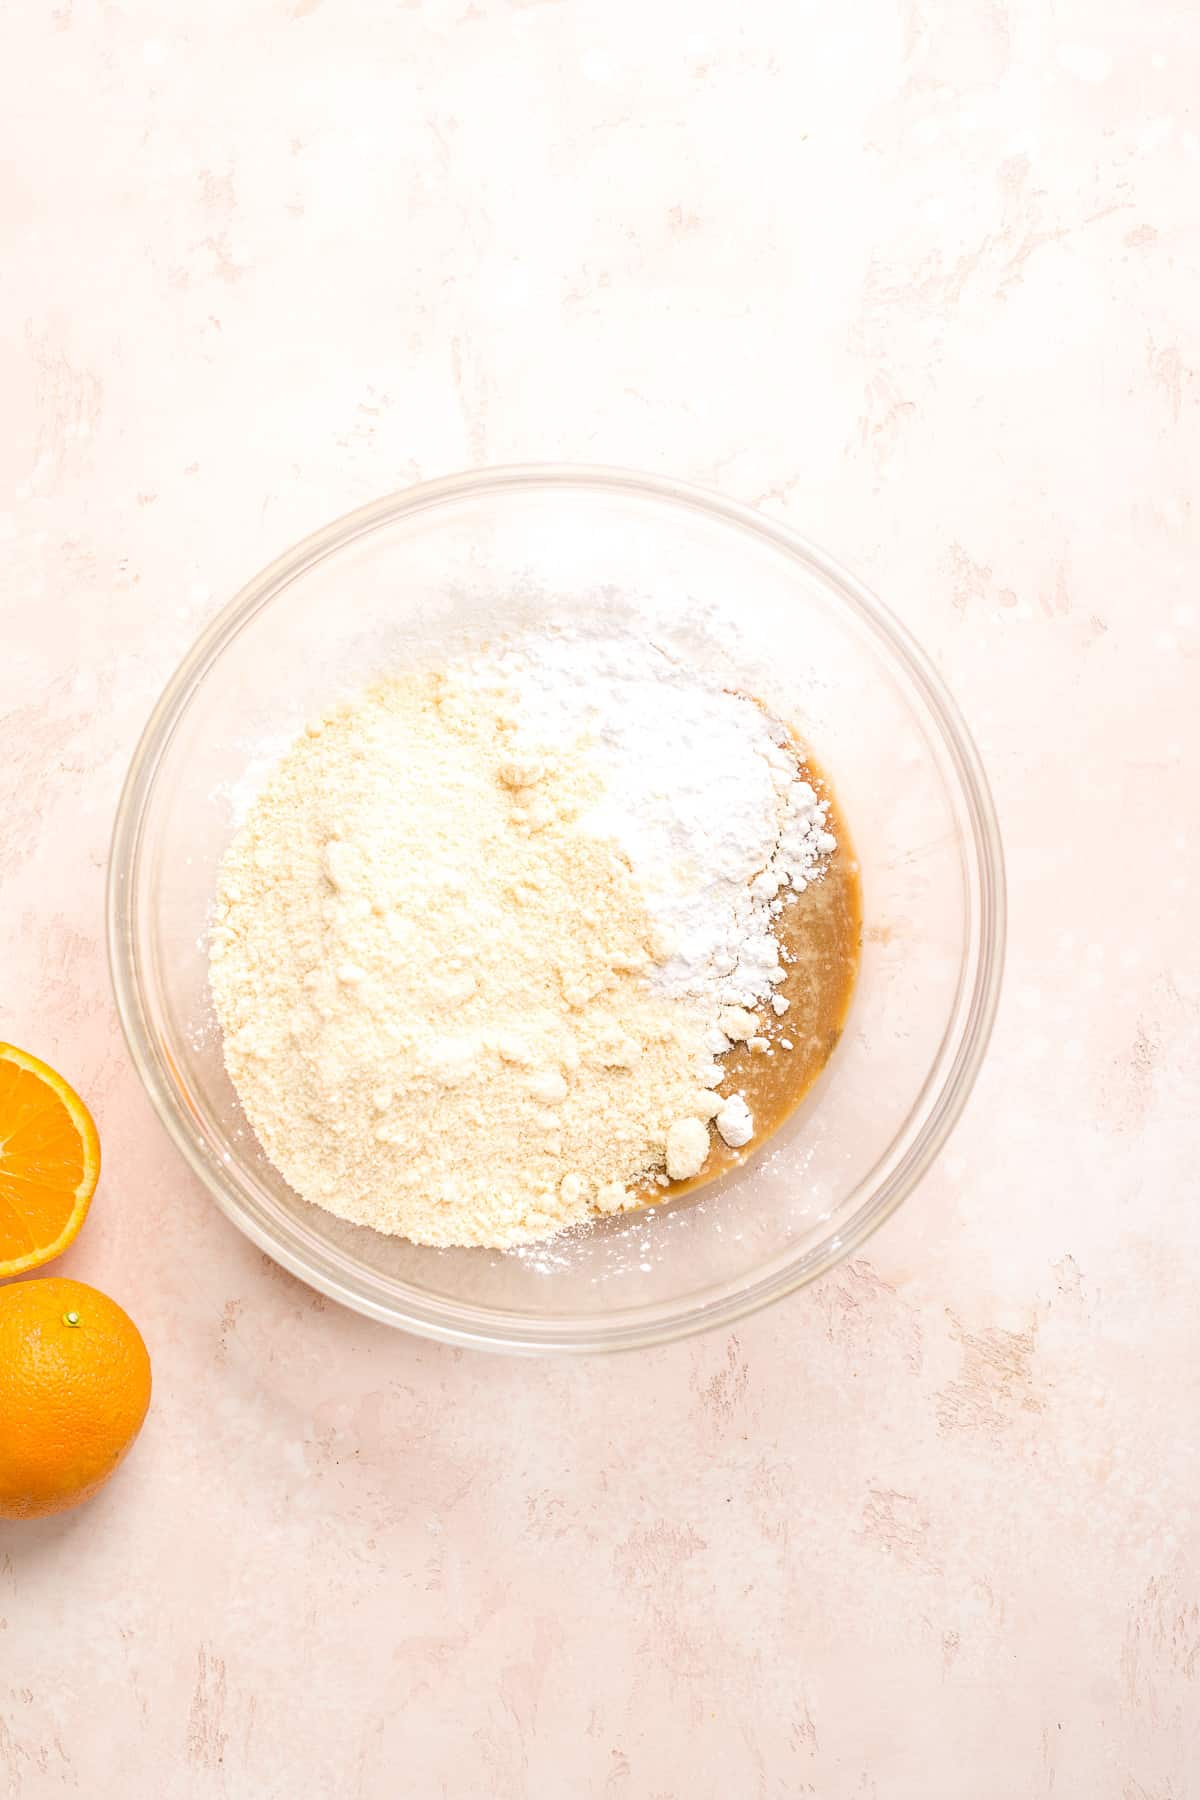 Large glass bowl with flour on top of tax mixture with orange off to the side.